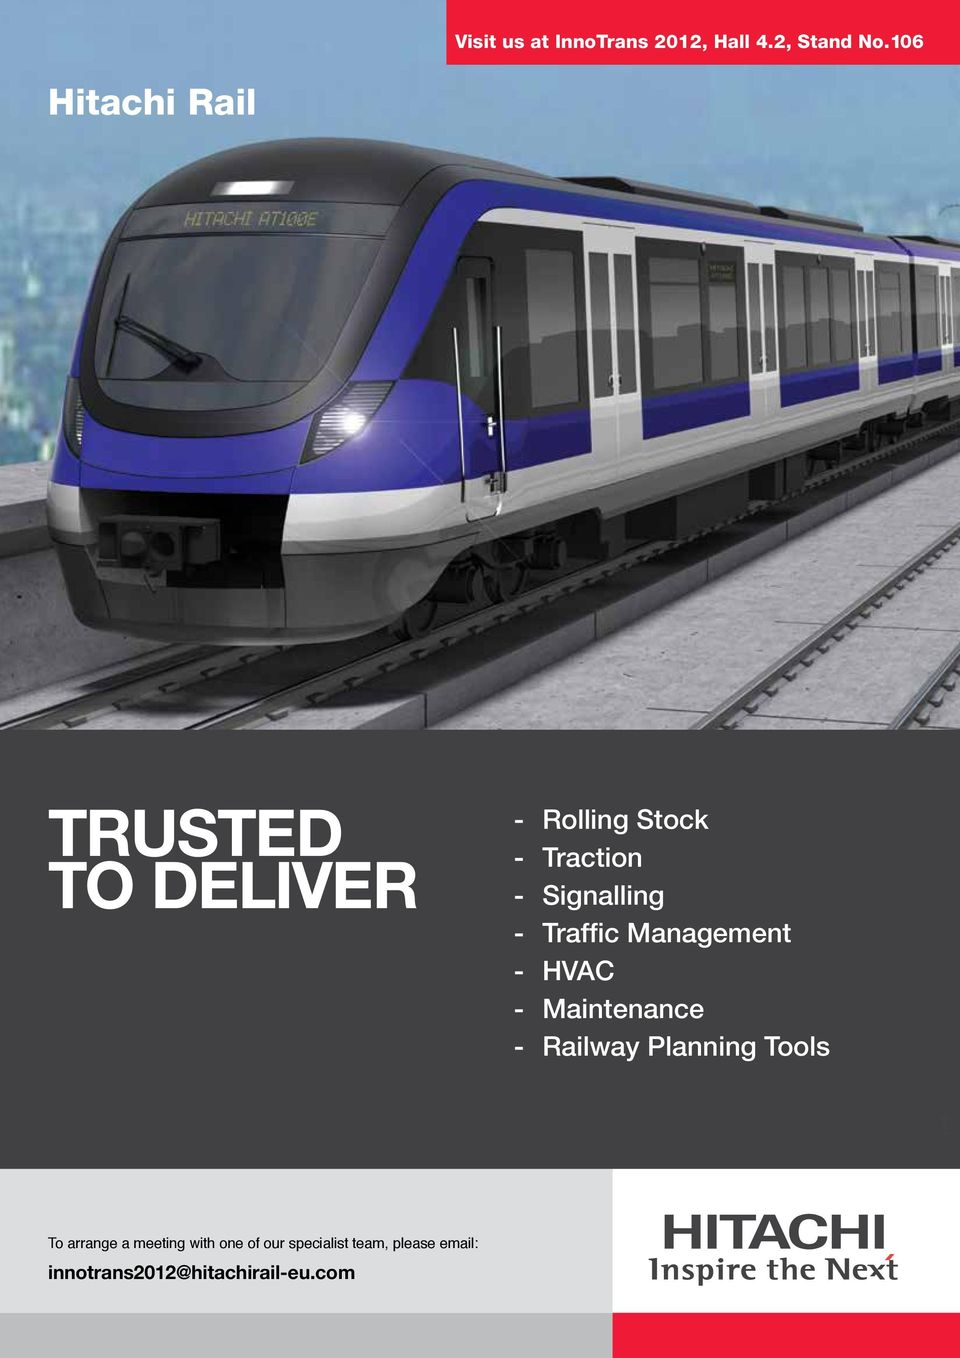 Signalling - Traffic Management - HVAC - Maintenance - Railway Planning